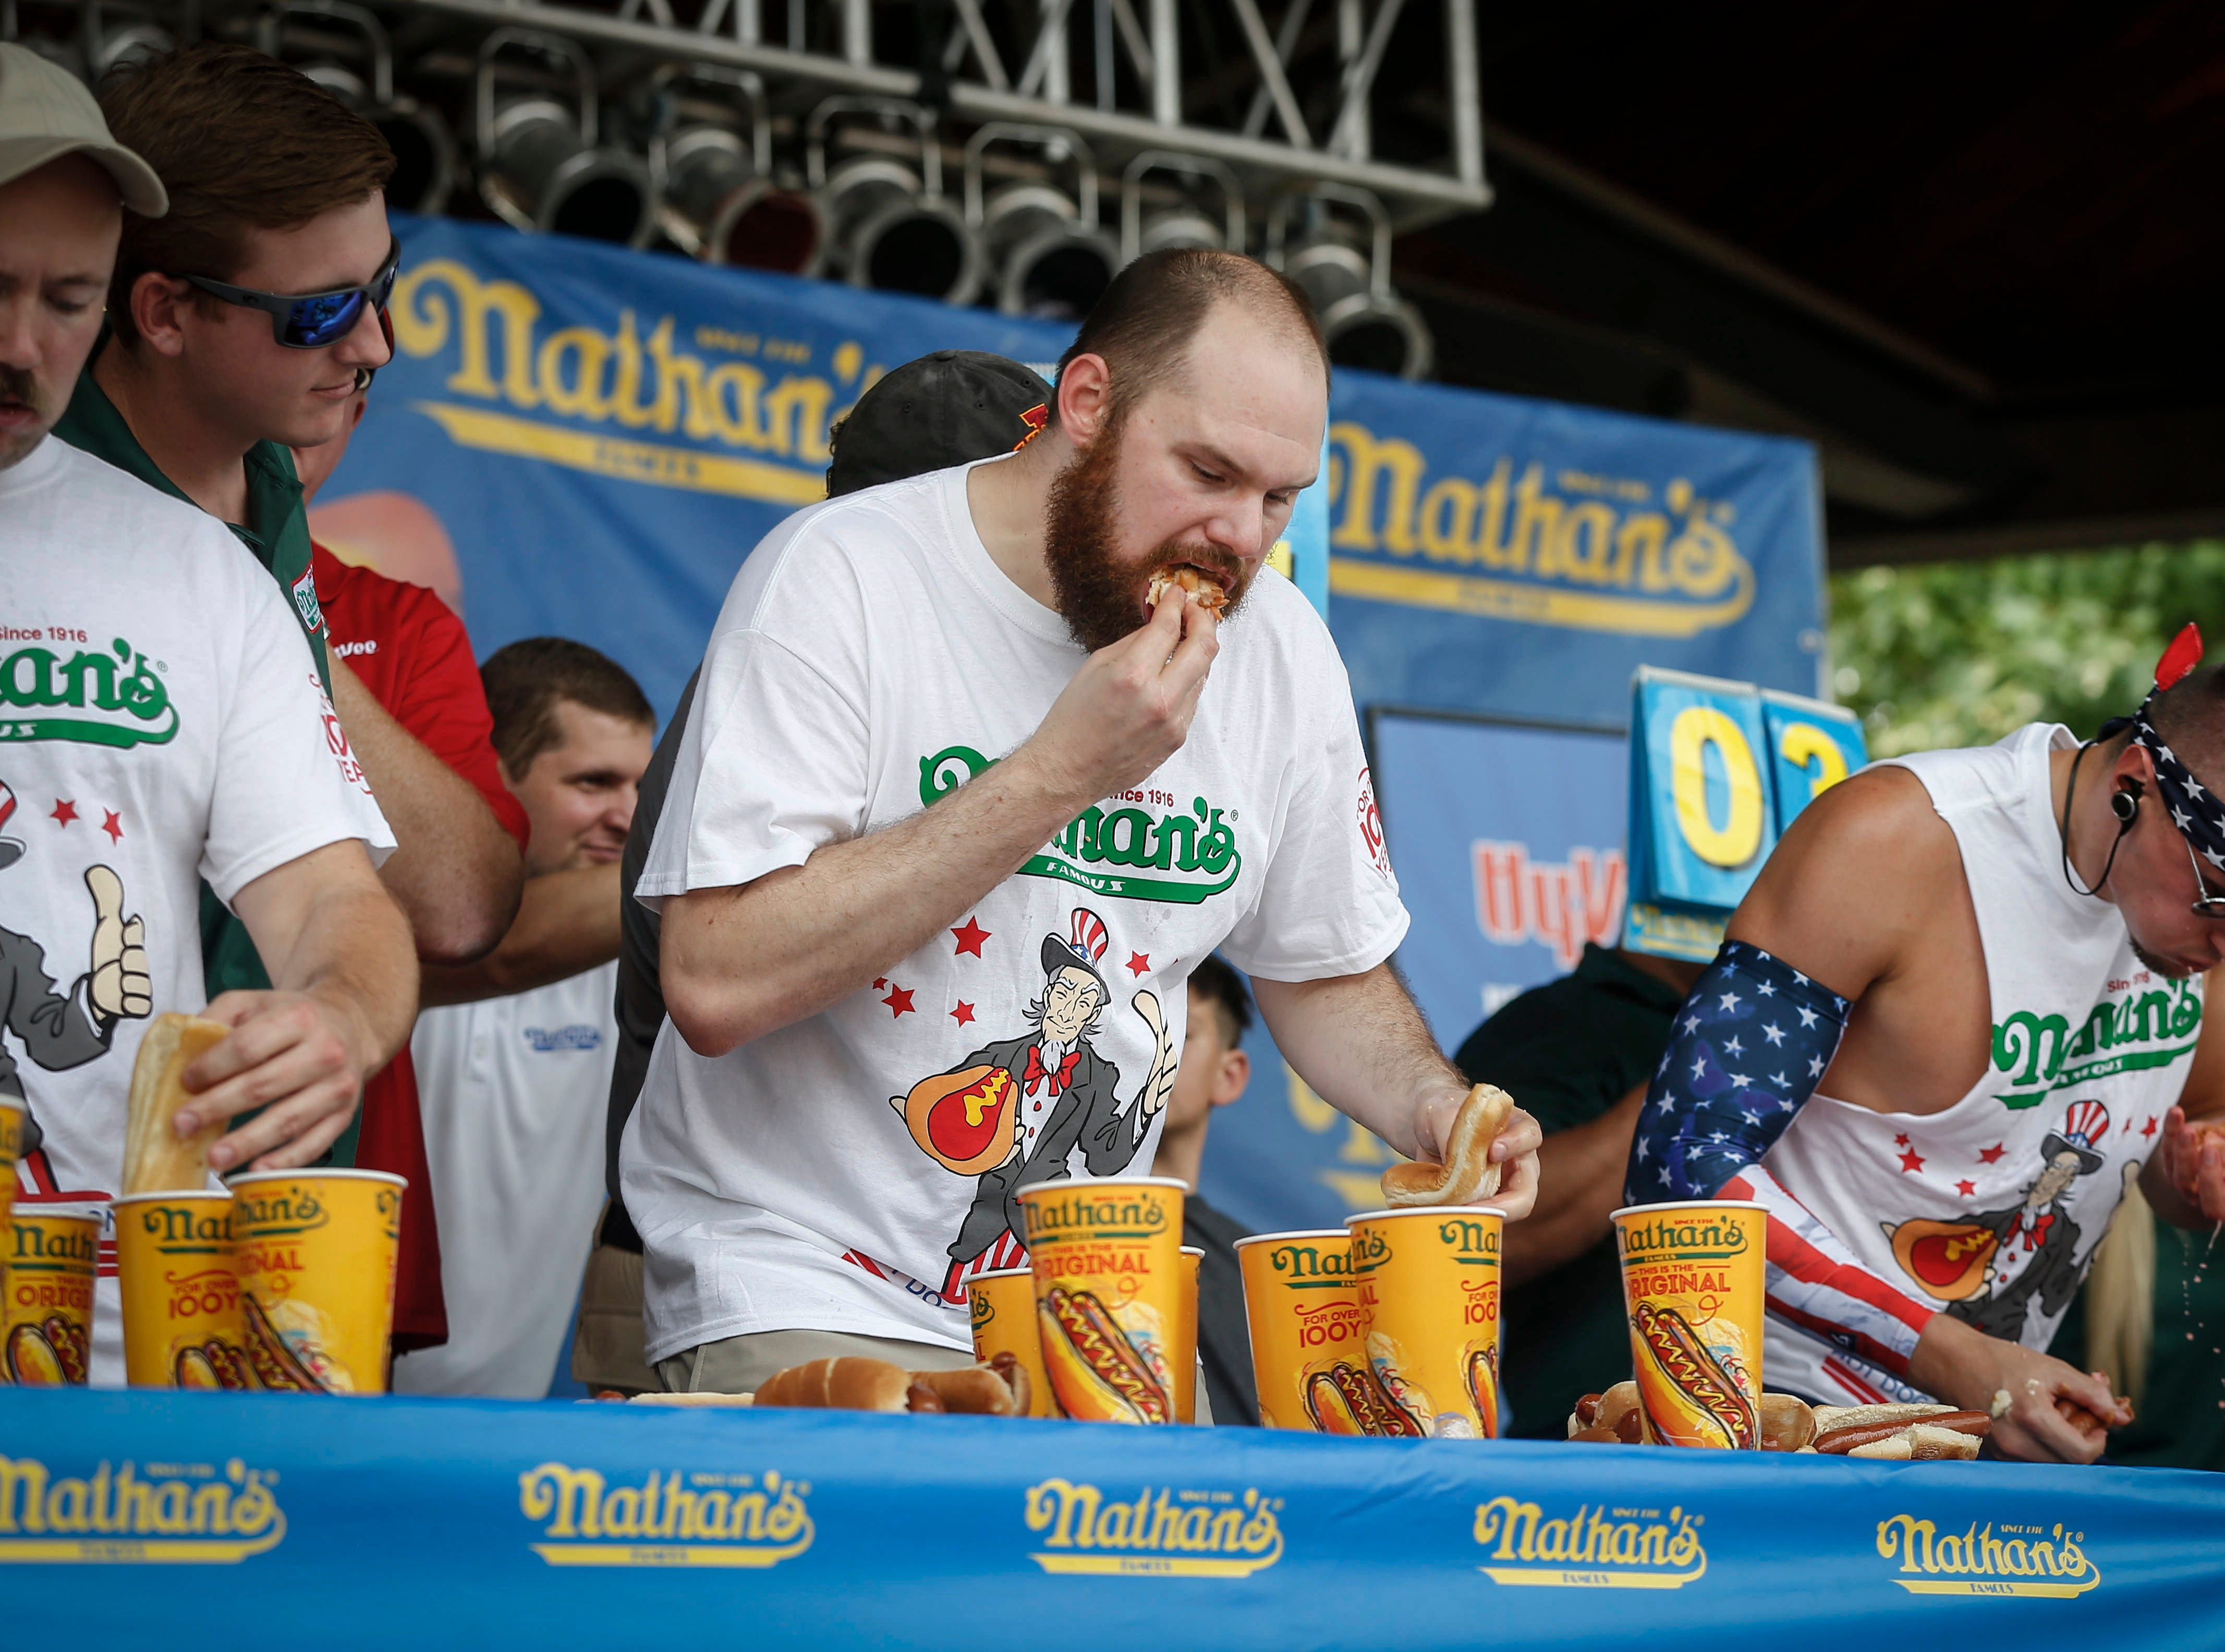 Jake Thompson, last year's defending champion, downs a hot dog during the regional Nathan's Hot Dog eating contest on Saturday, Aug. 11, 2018, during the Iowa State Fair in Des Moines.